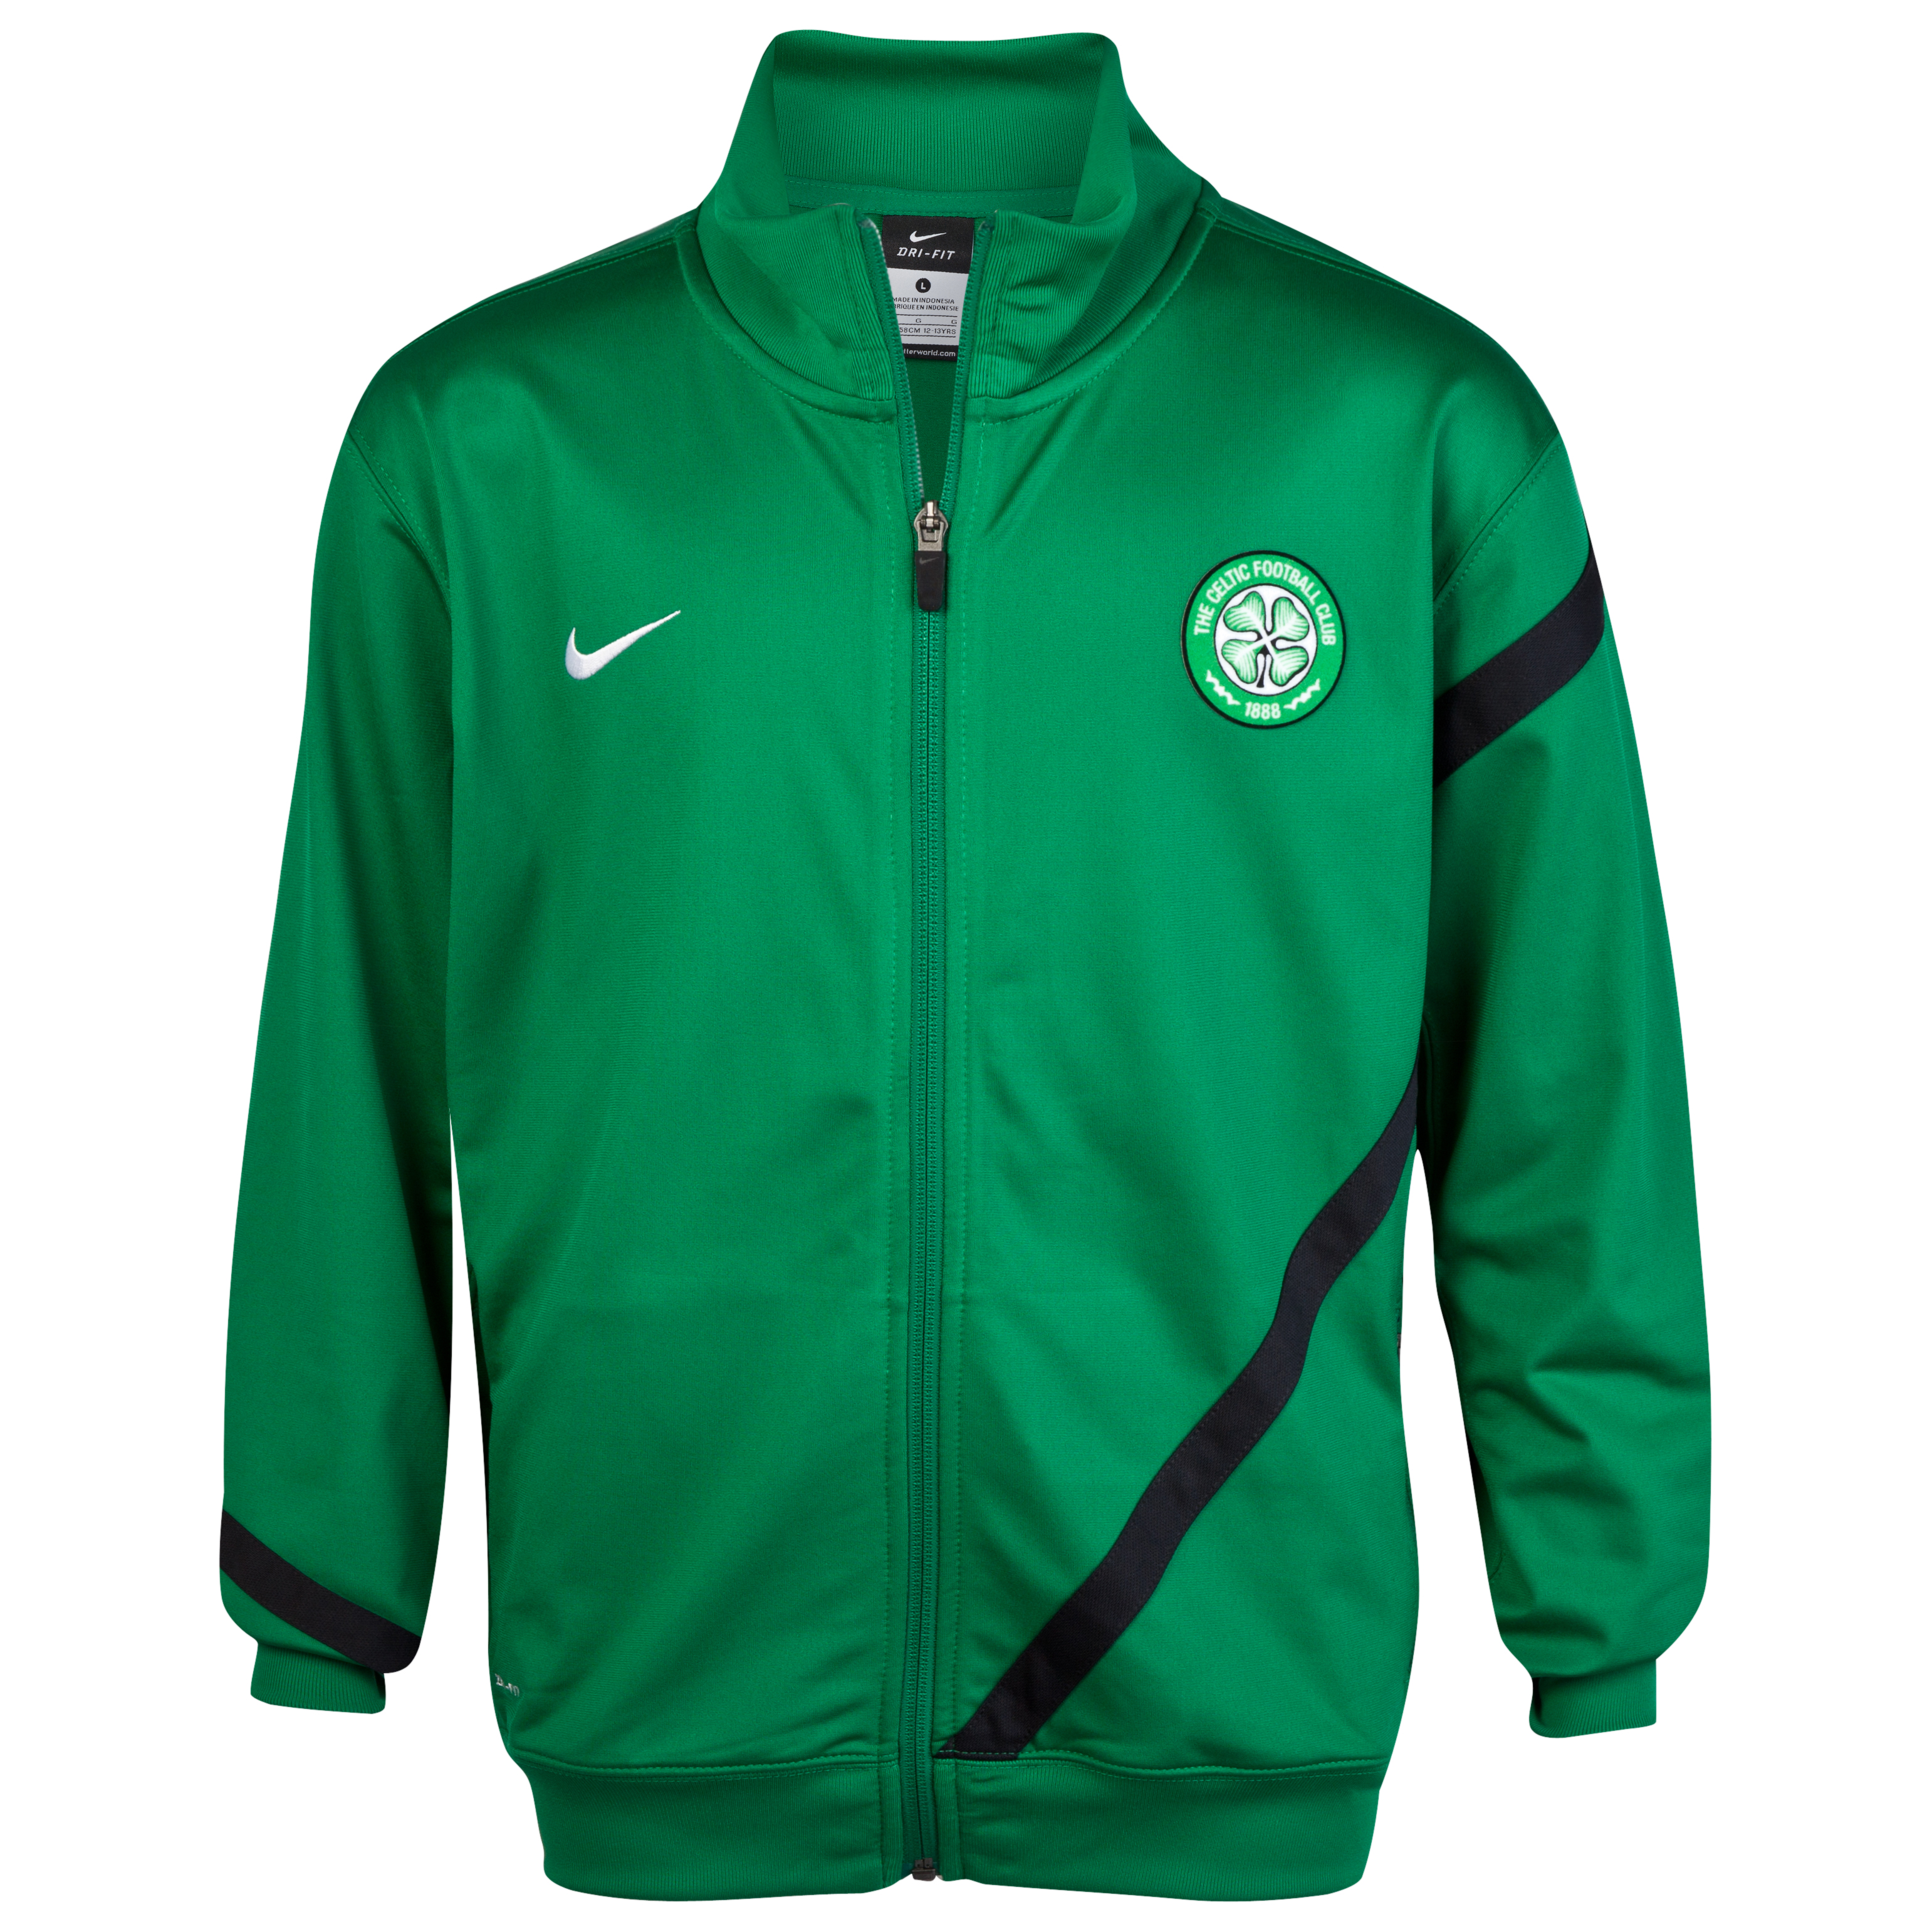 Celtic Poly Track Jacket - Pine Green/Black/White - Kids